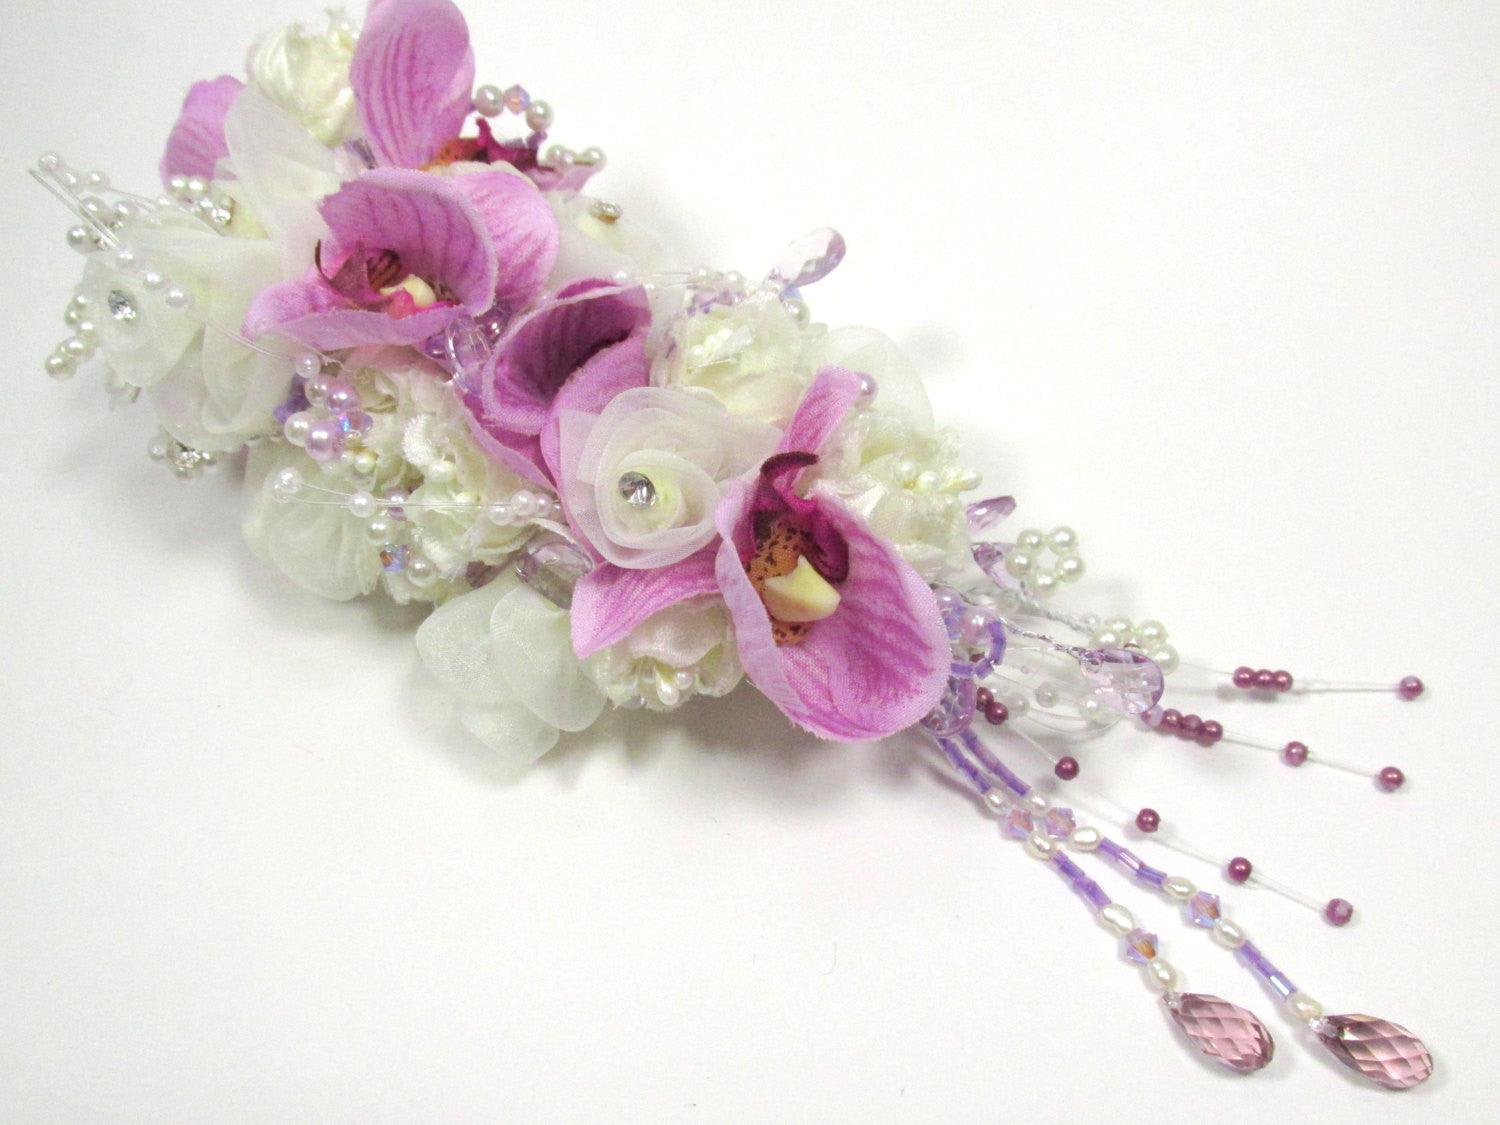 Bridal Hair Clip in Lavender and Cream with Swarovski Briolette Drops - Odyssey Creations